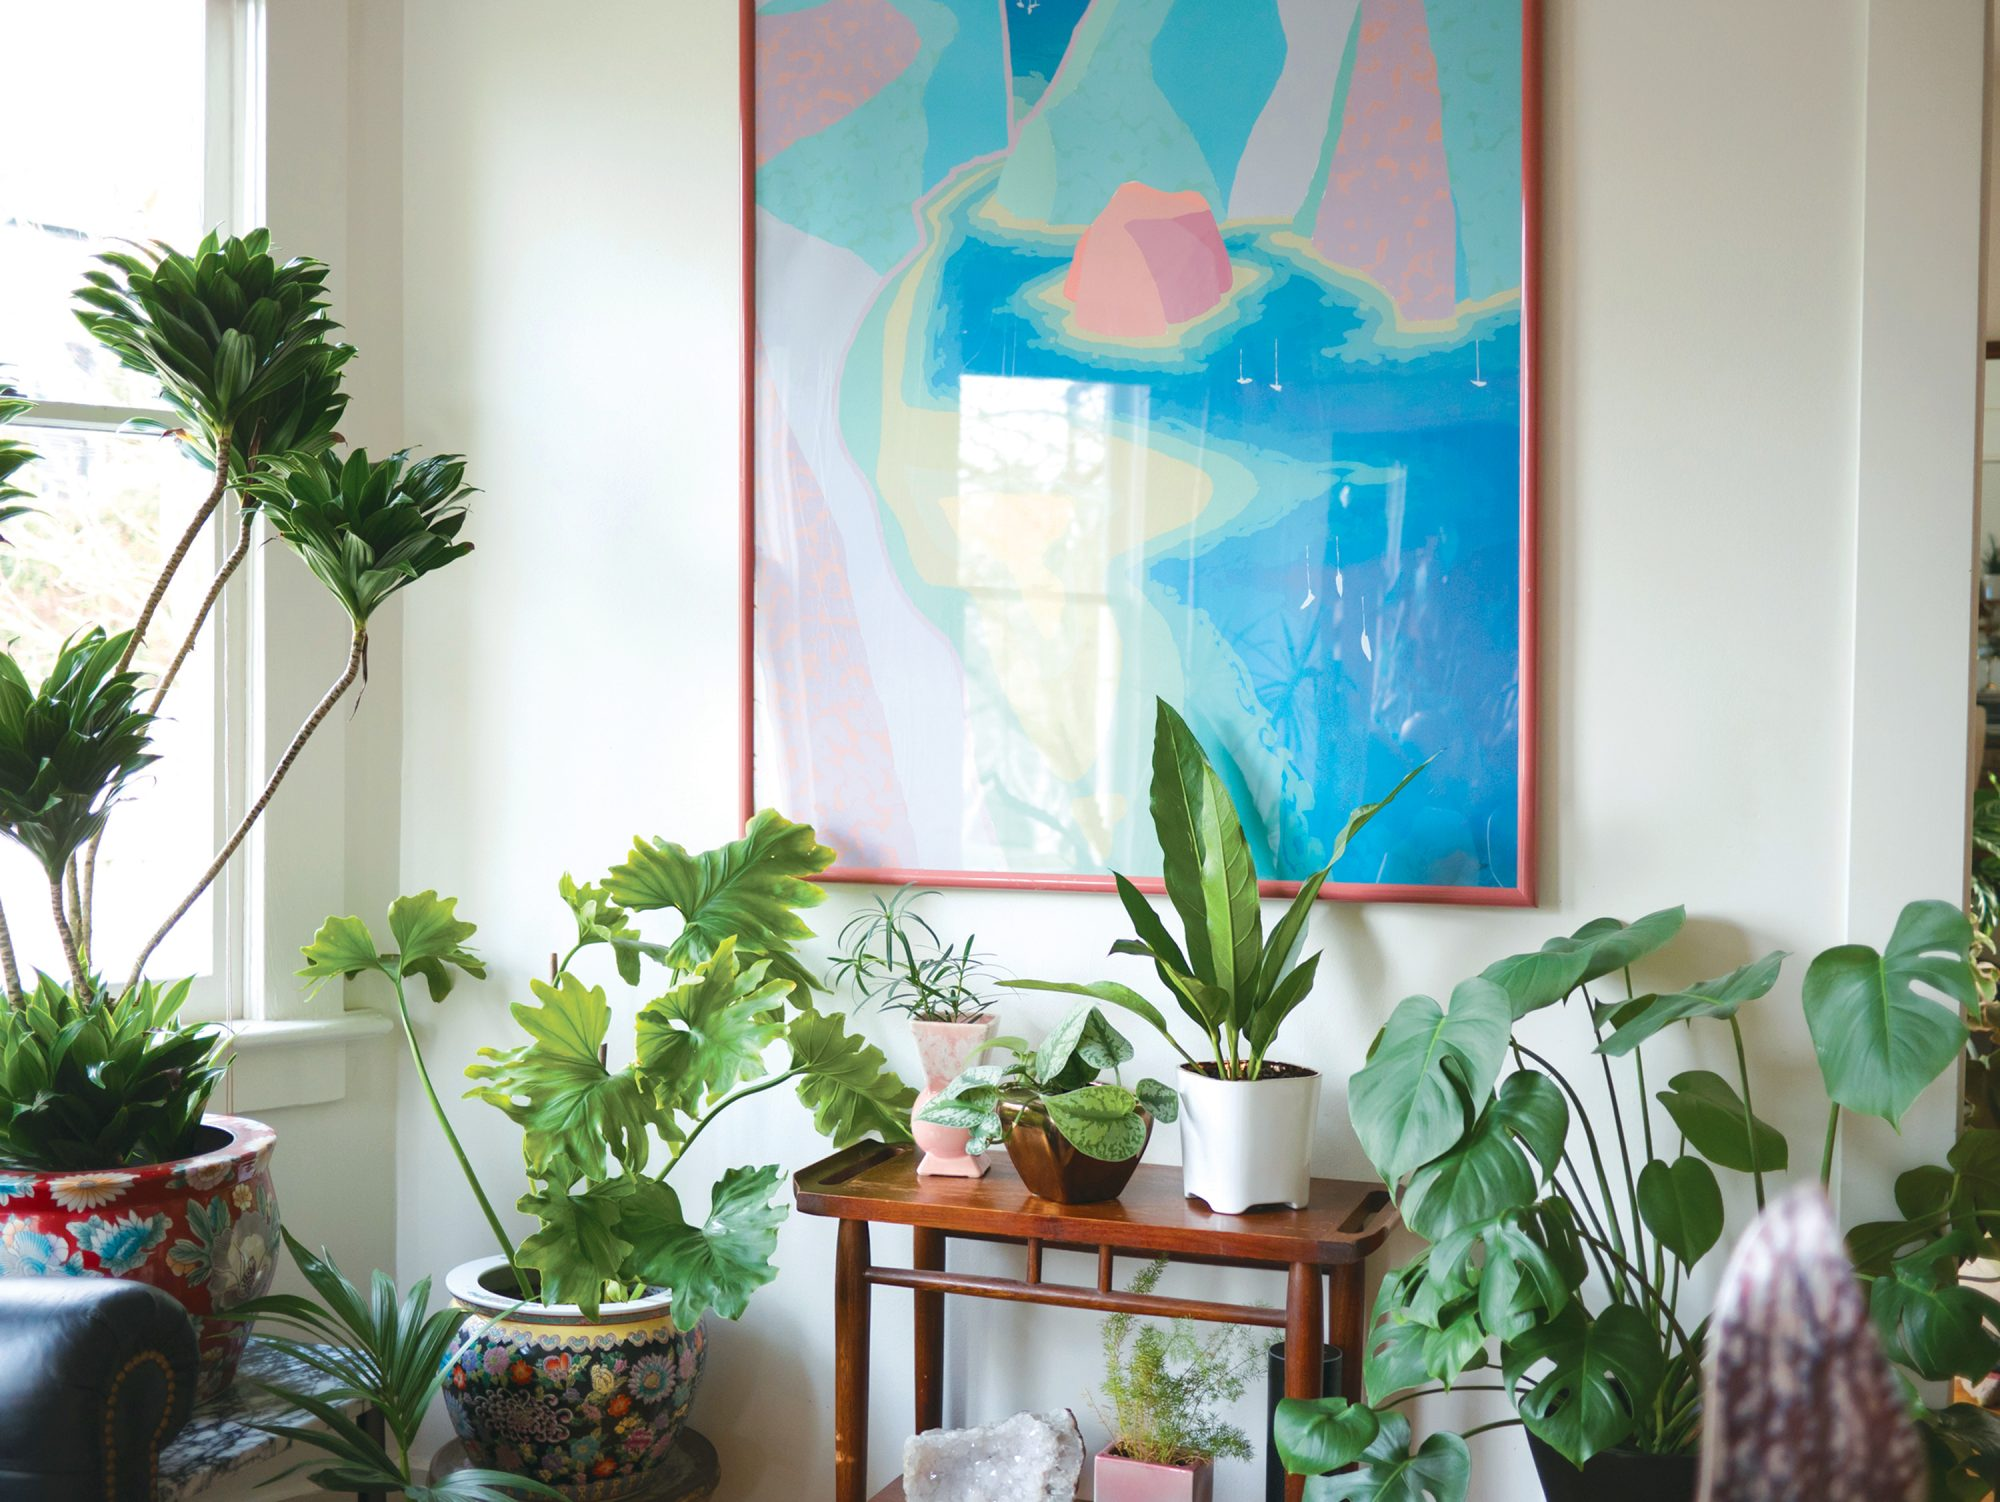 Follow These 4 Very Simple Steps to Keep Your Houseplants Alive (Even If You Have a Black Thumb)